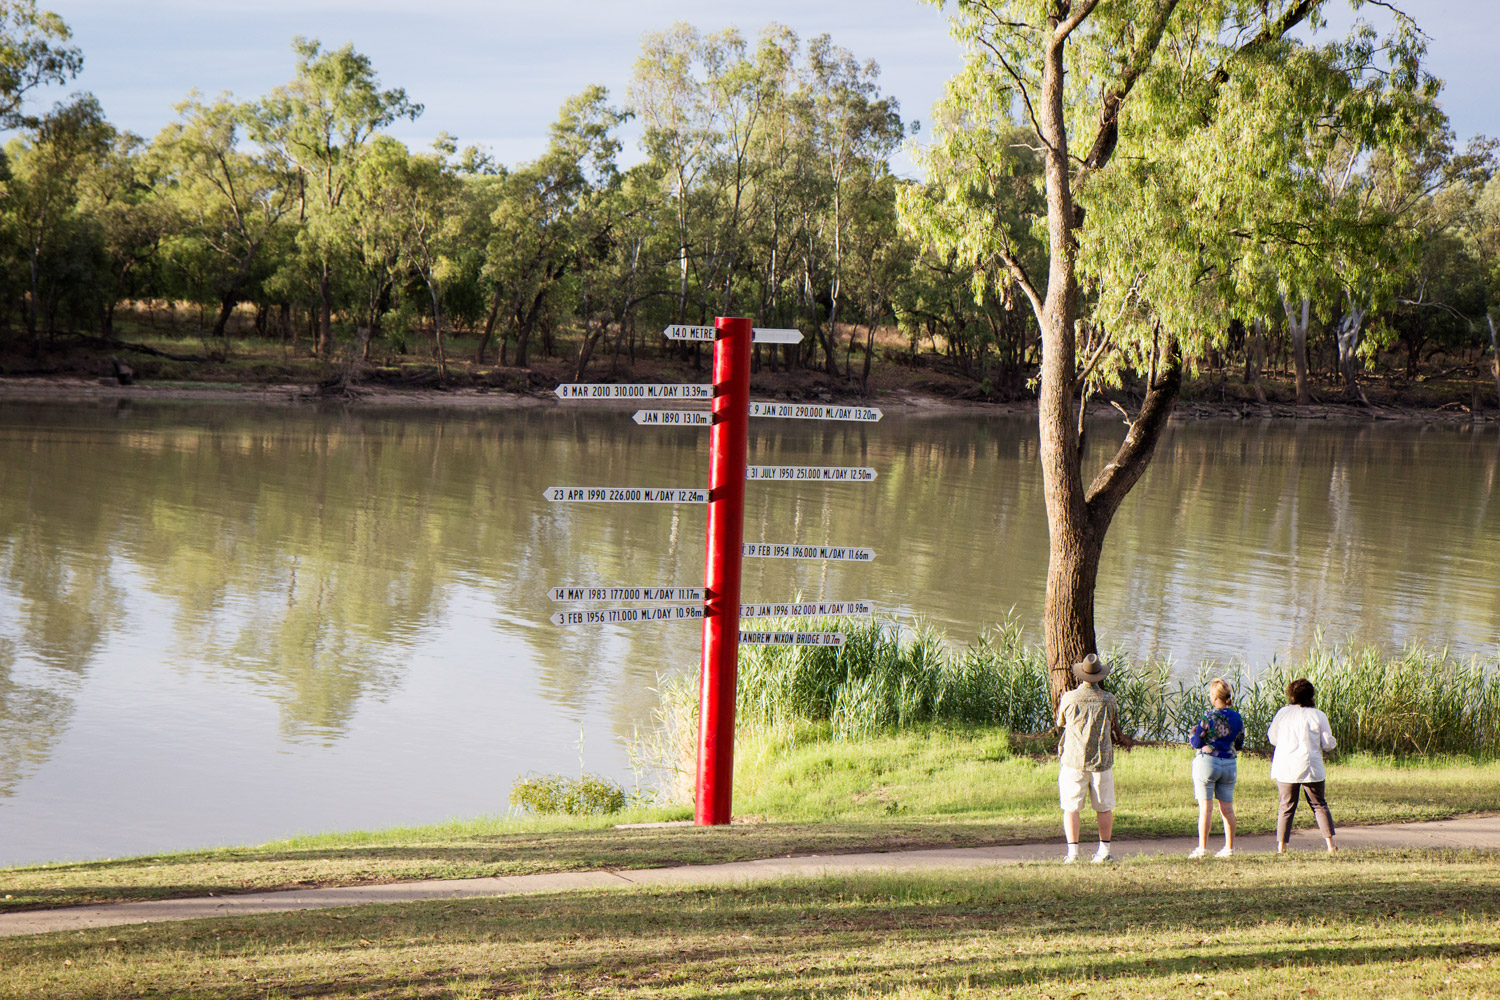 Flood Marker Pole in St George